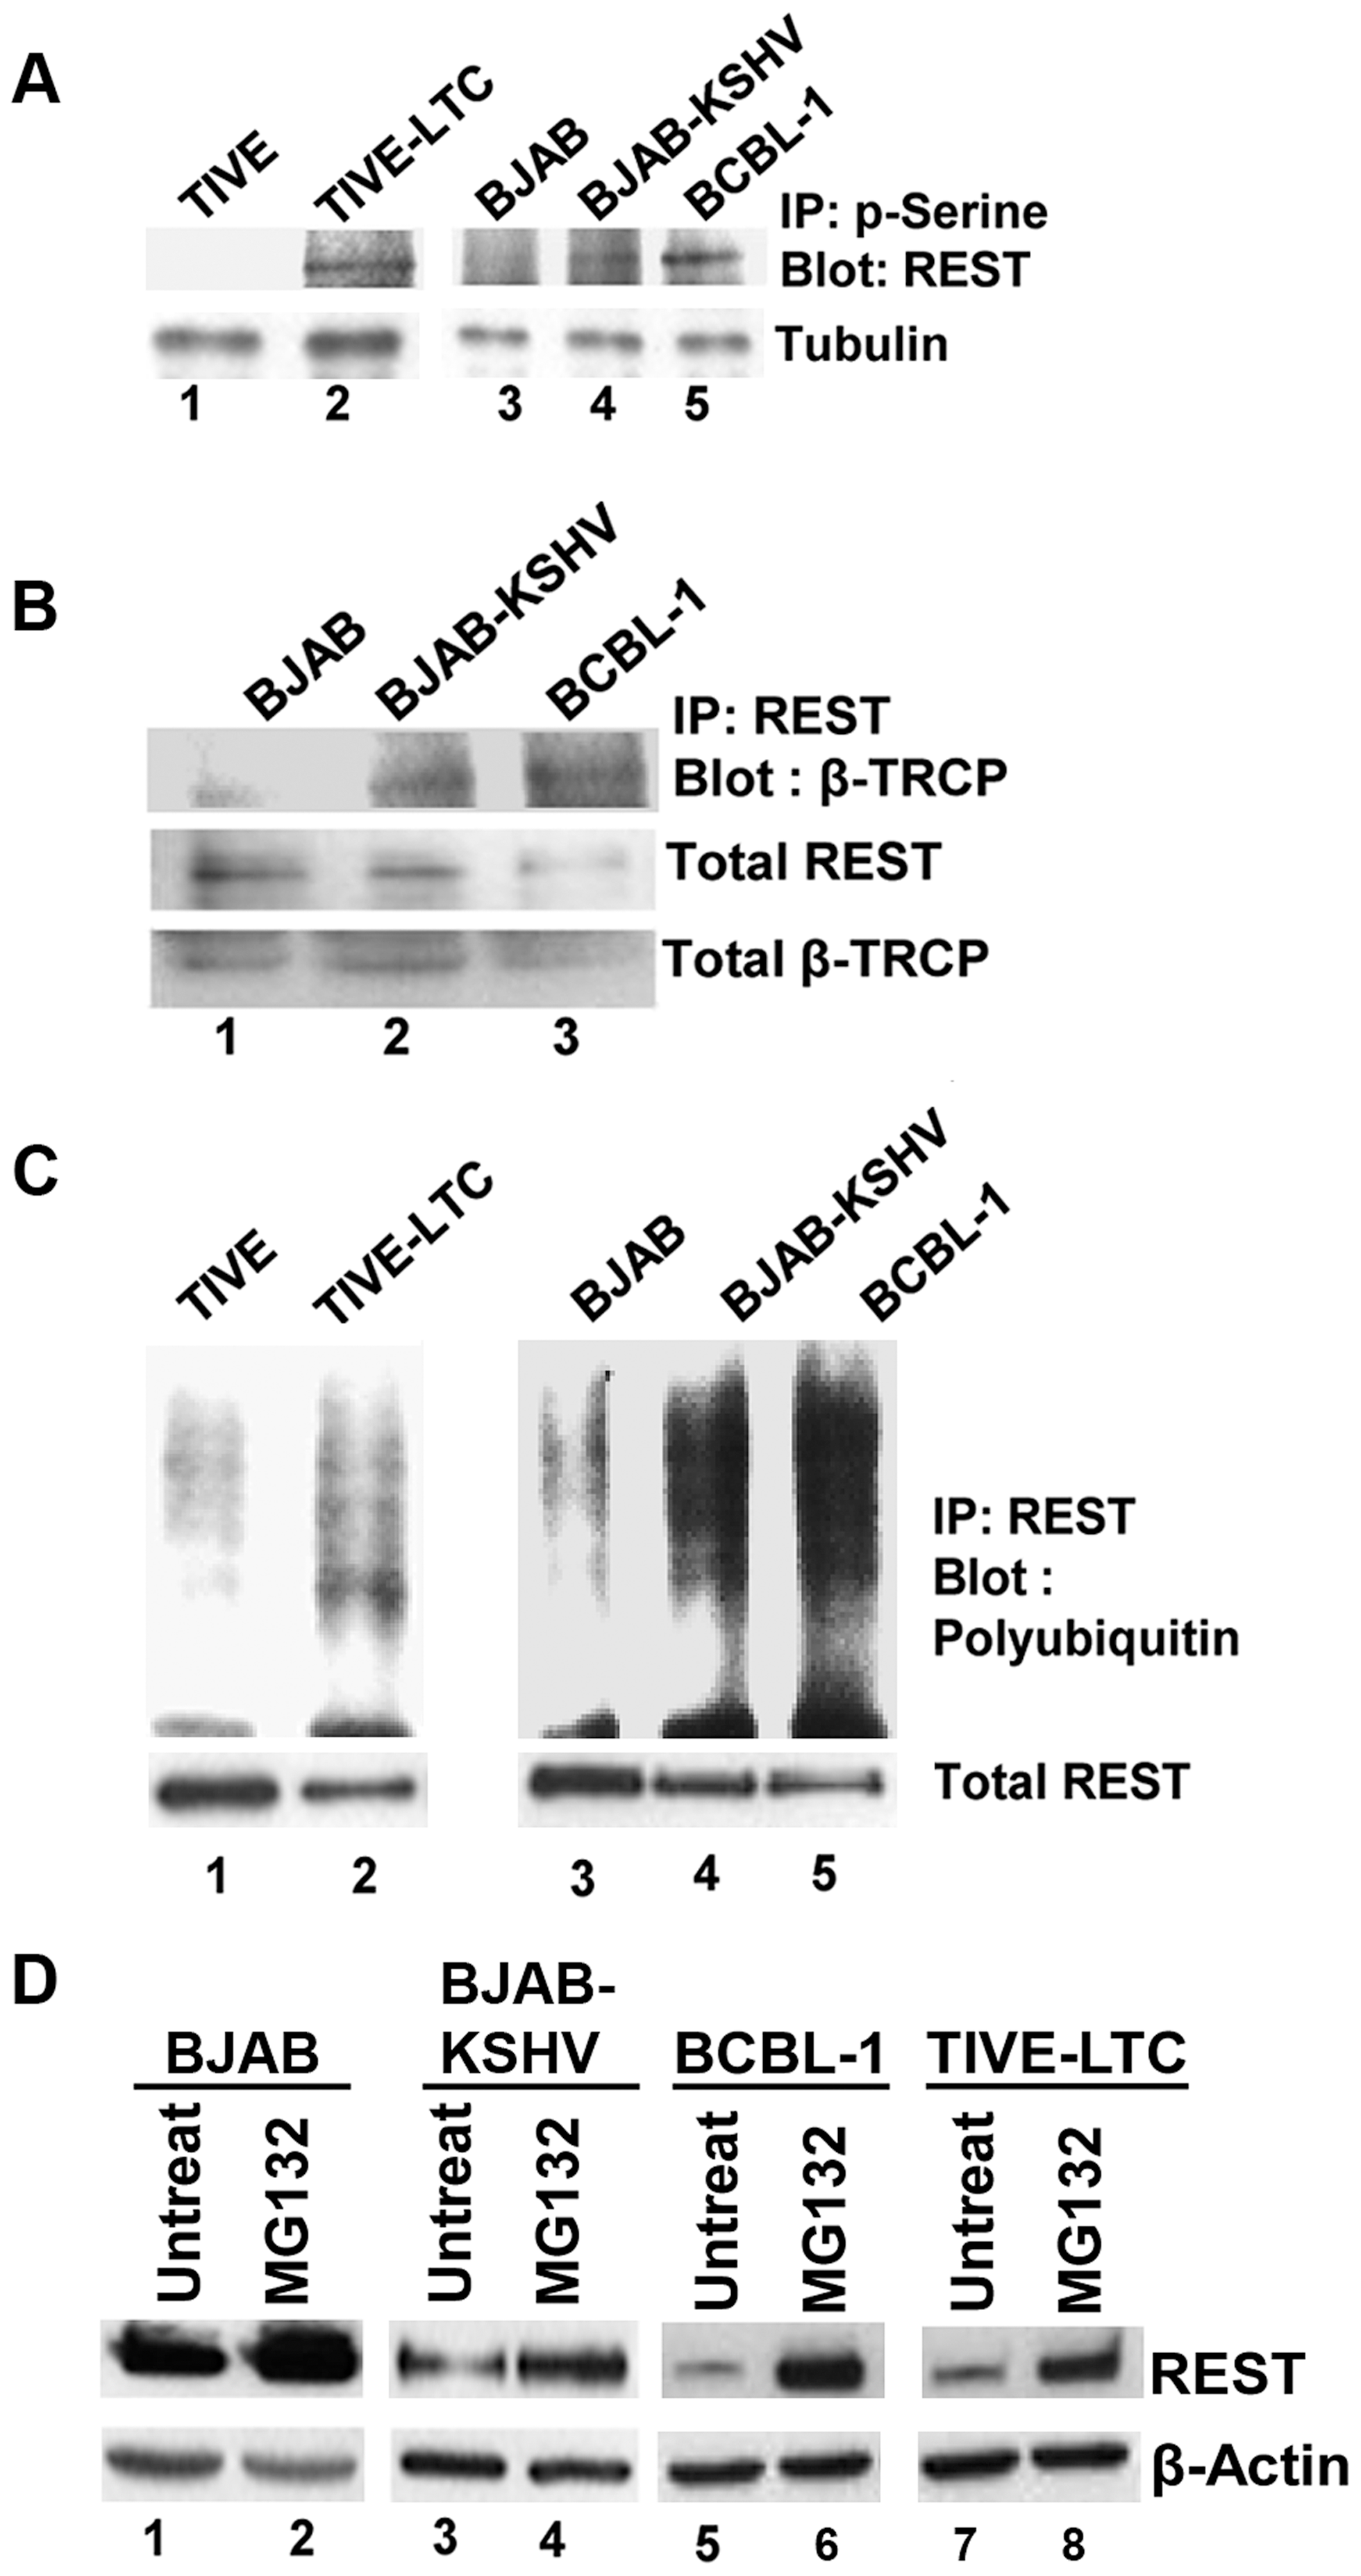 Phosphorylation and ubiquitination of REST in the cytoplasm of KSHV infected cells.